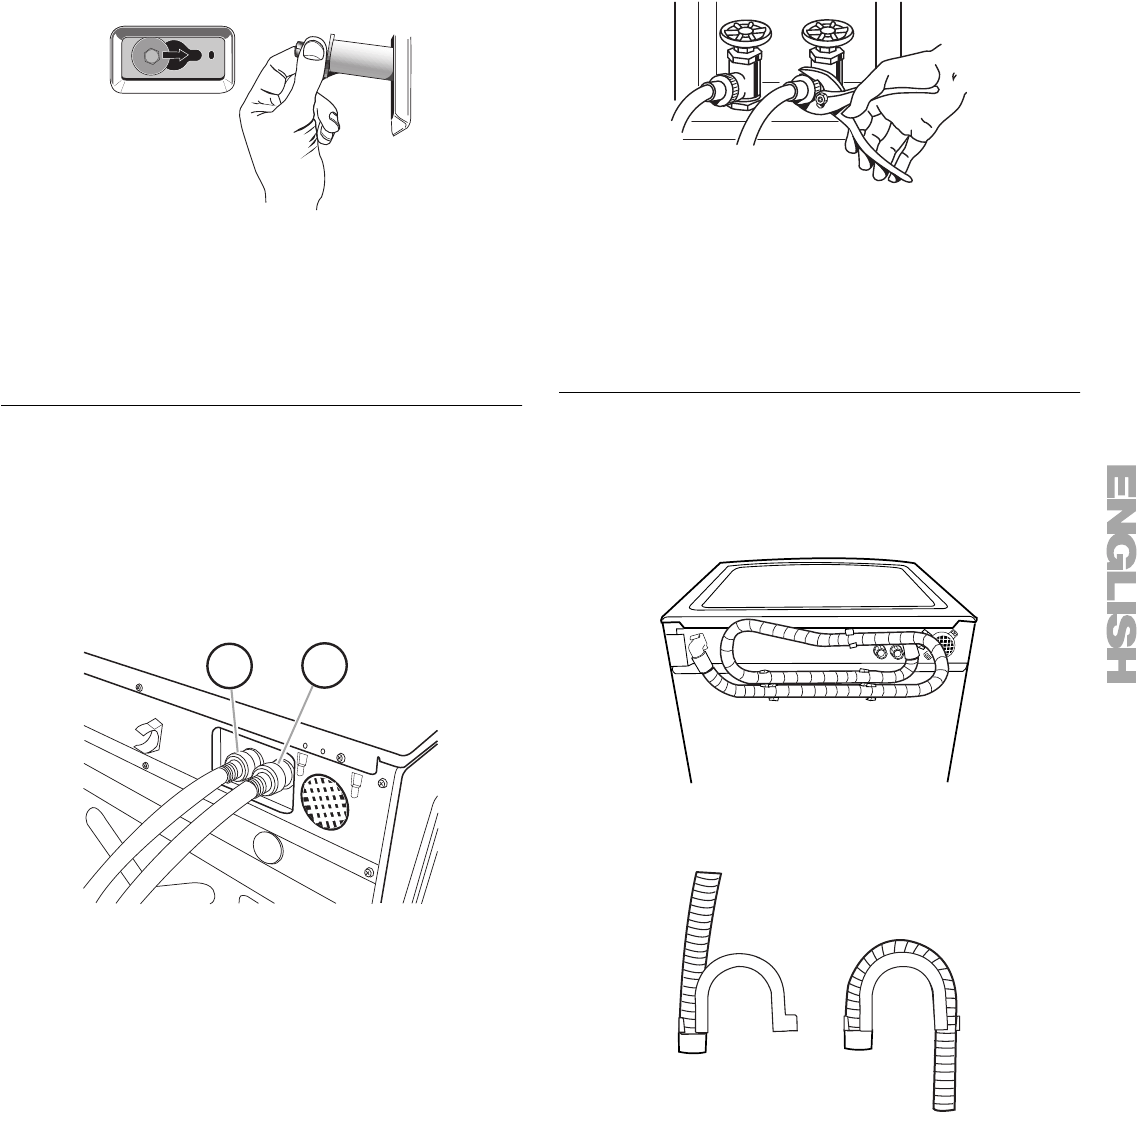 Page 9 of Kenmore Washer 110.4708 User Guide